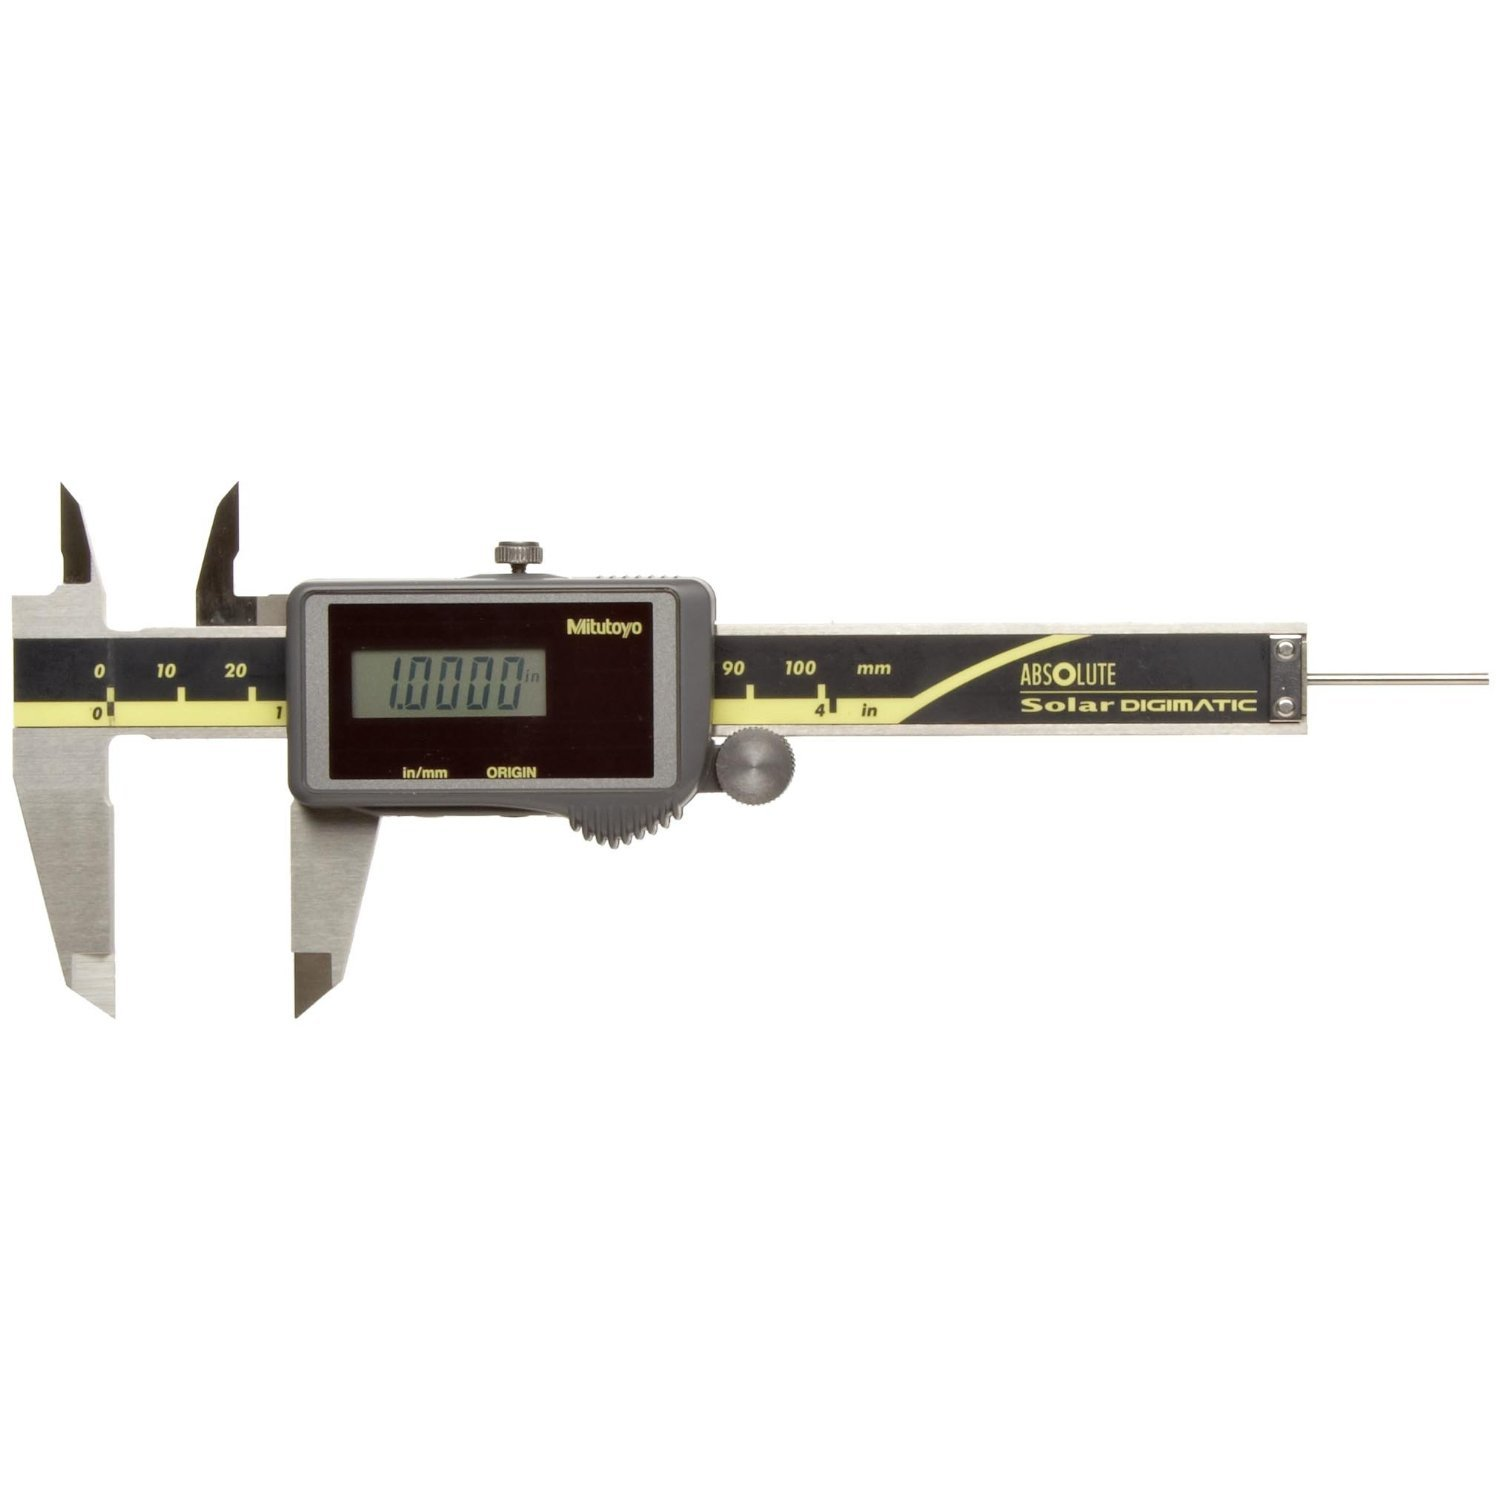 ABSOLUTE Solar Caliper SERIES 500 — No battery or origin reset needed (MITUTOYO)